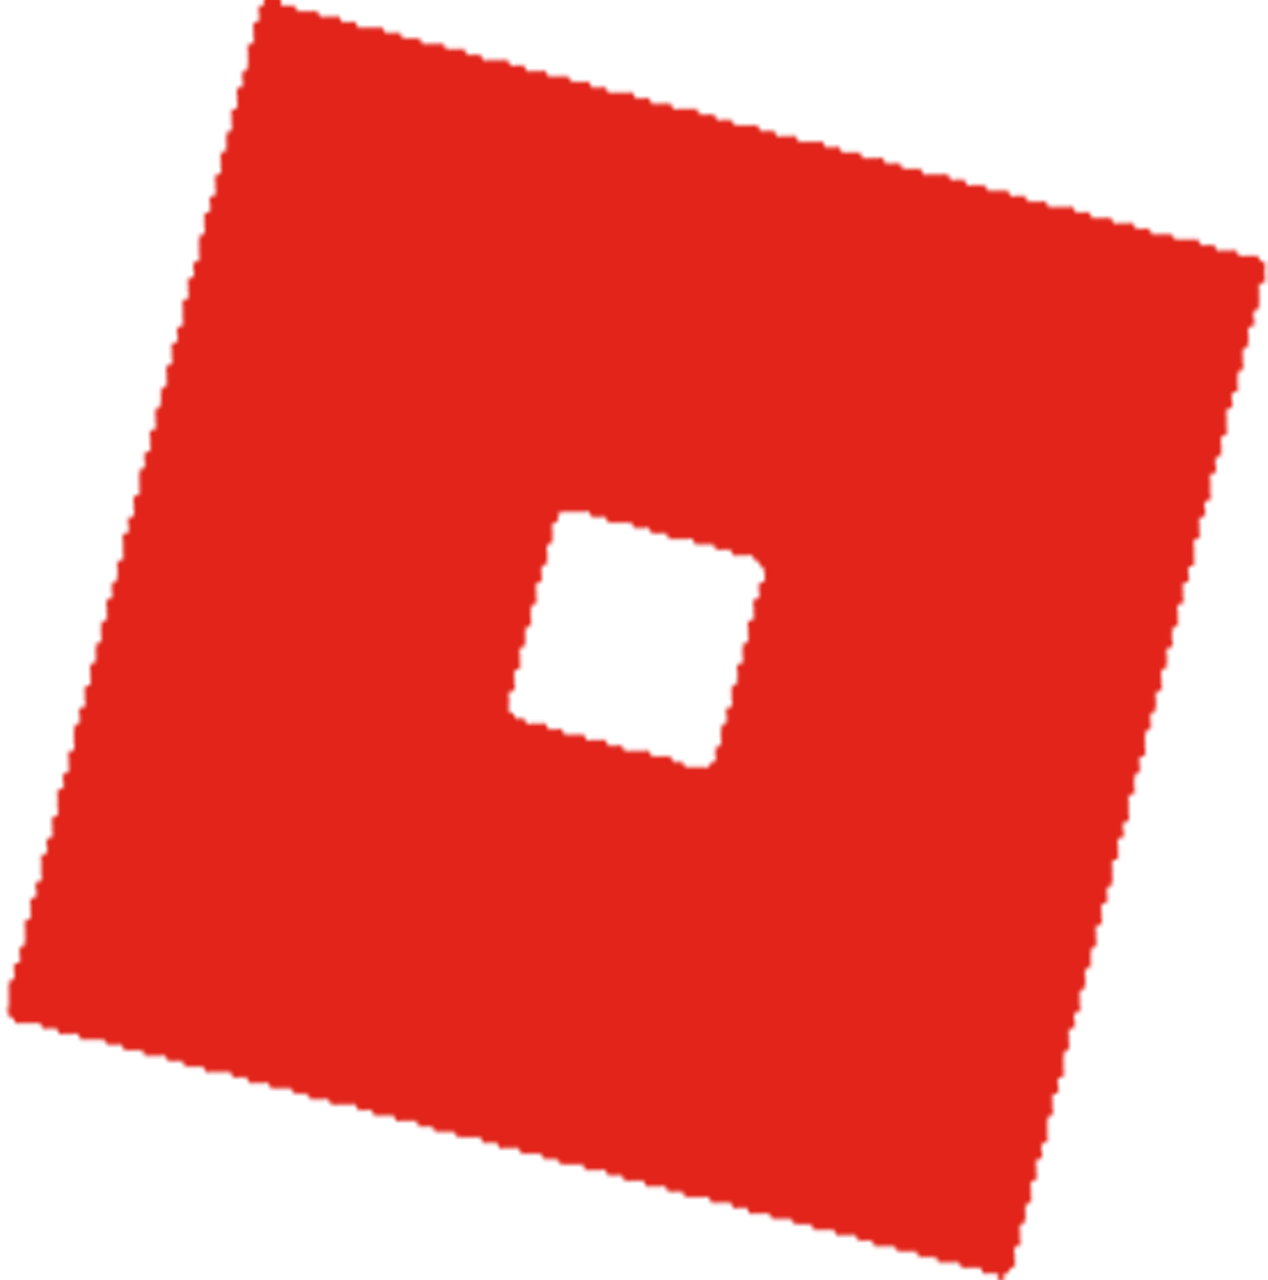 Roblox Logo Line Minecraft Red Free Clipart HQ PNG Image